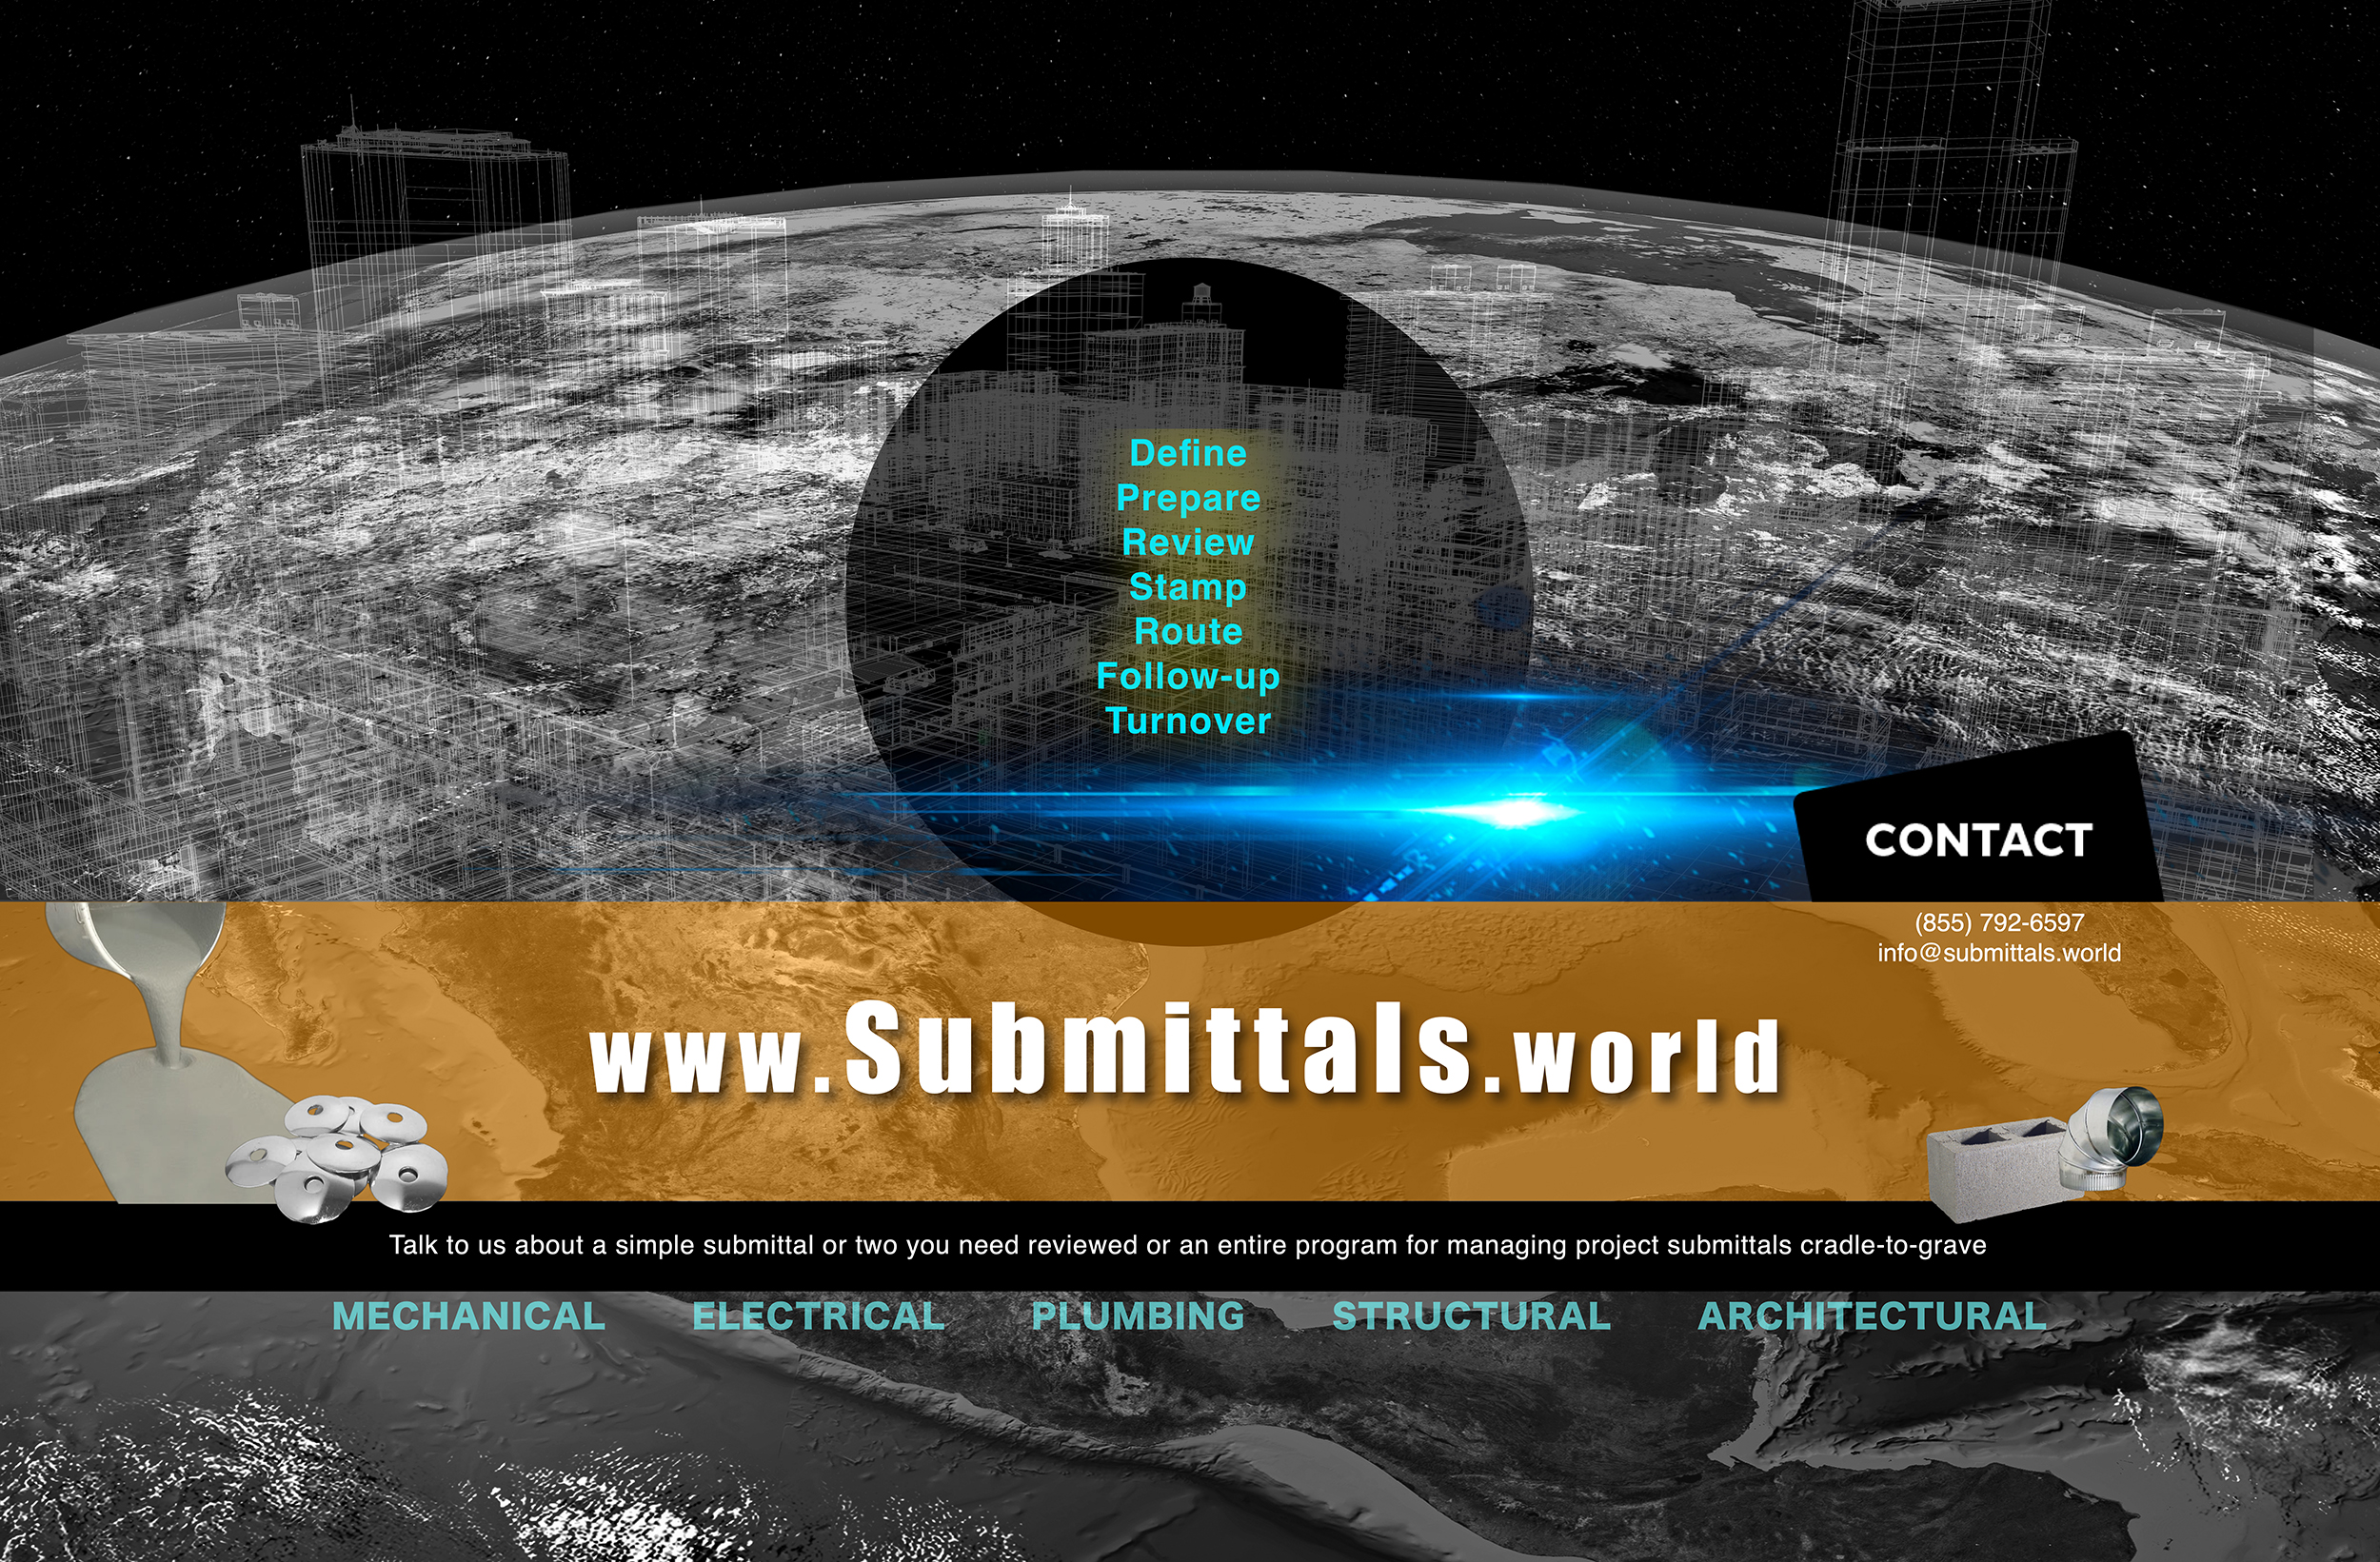 Construction Submittal reviews by professional engineers and designer's